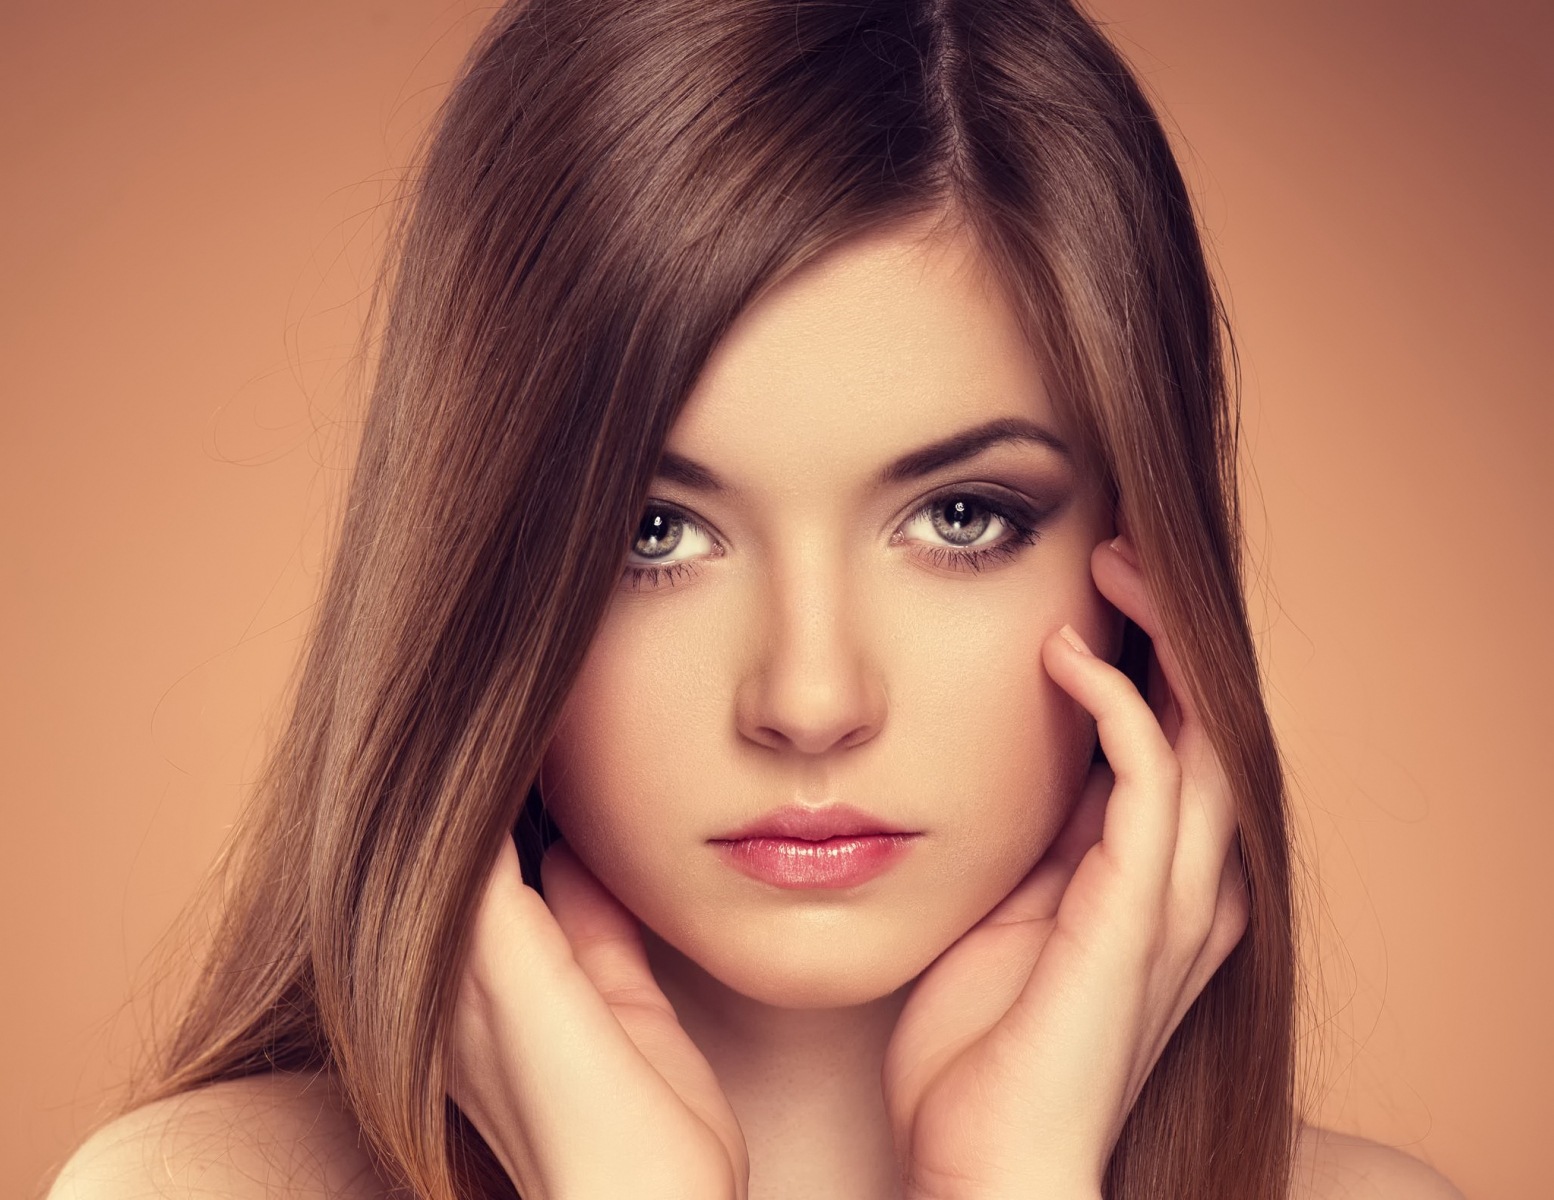 Beautiful Face HD Wallpapers and Background Images | YL